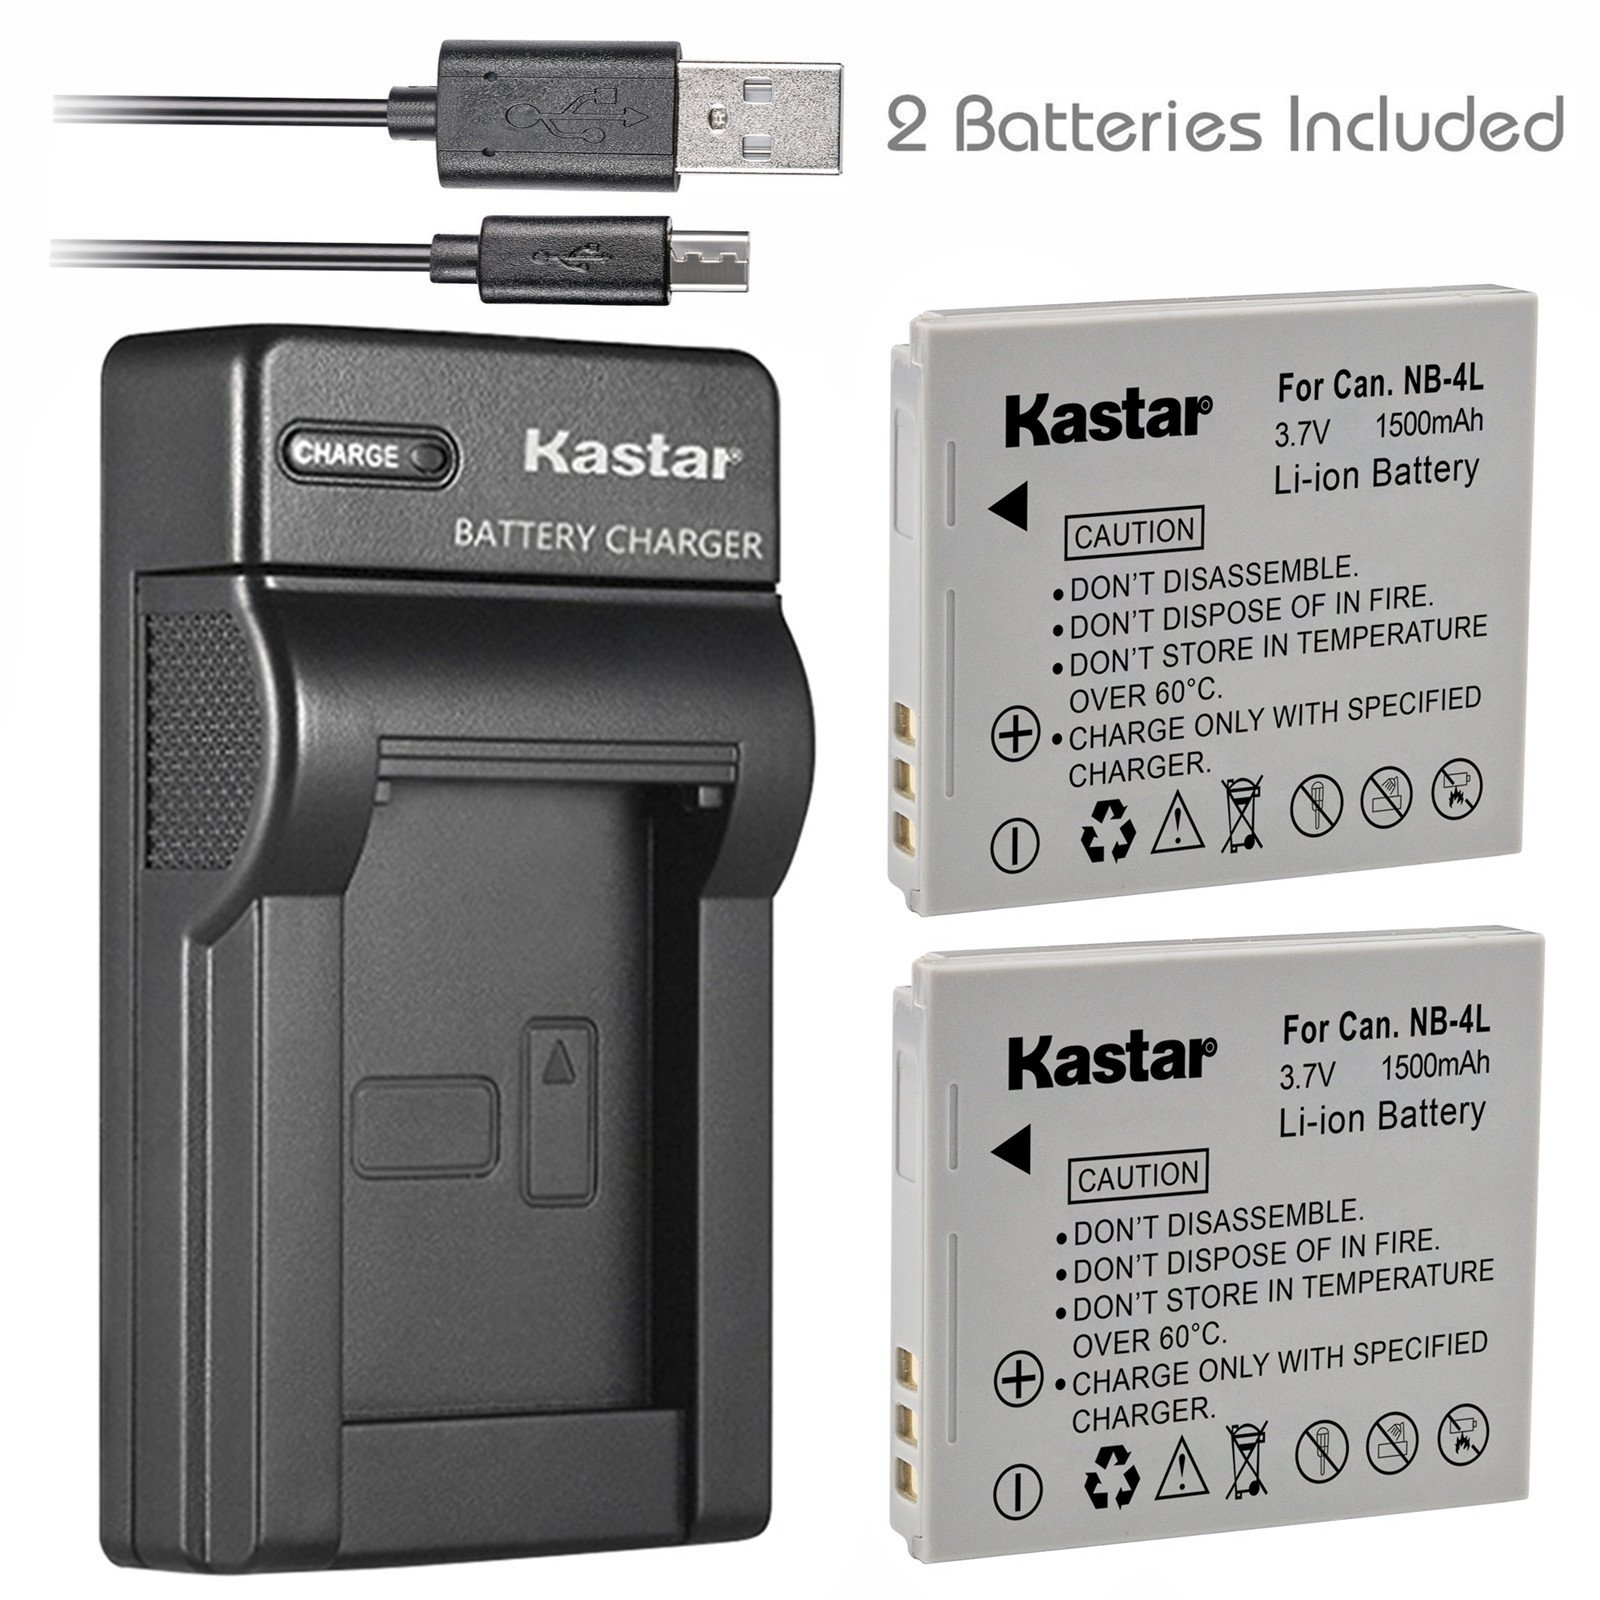 Kastar Battery (X2) & Slim USB Charger for Canon NB-4L, NB4L and Canon ELPH 100 HS, 300 HS, 310 HS, 330 HS, VIXIA mini, Powershot SD400, SD450, SD600, SD630, SD750, SD780, SD1000, SD1100 IS, SD1400 IS